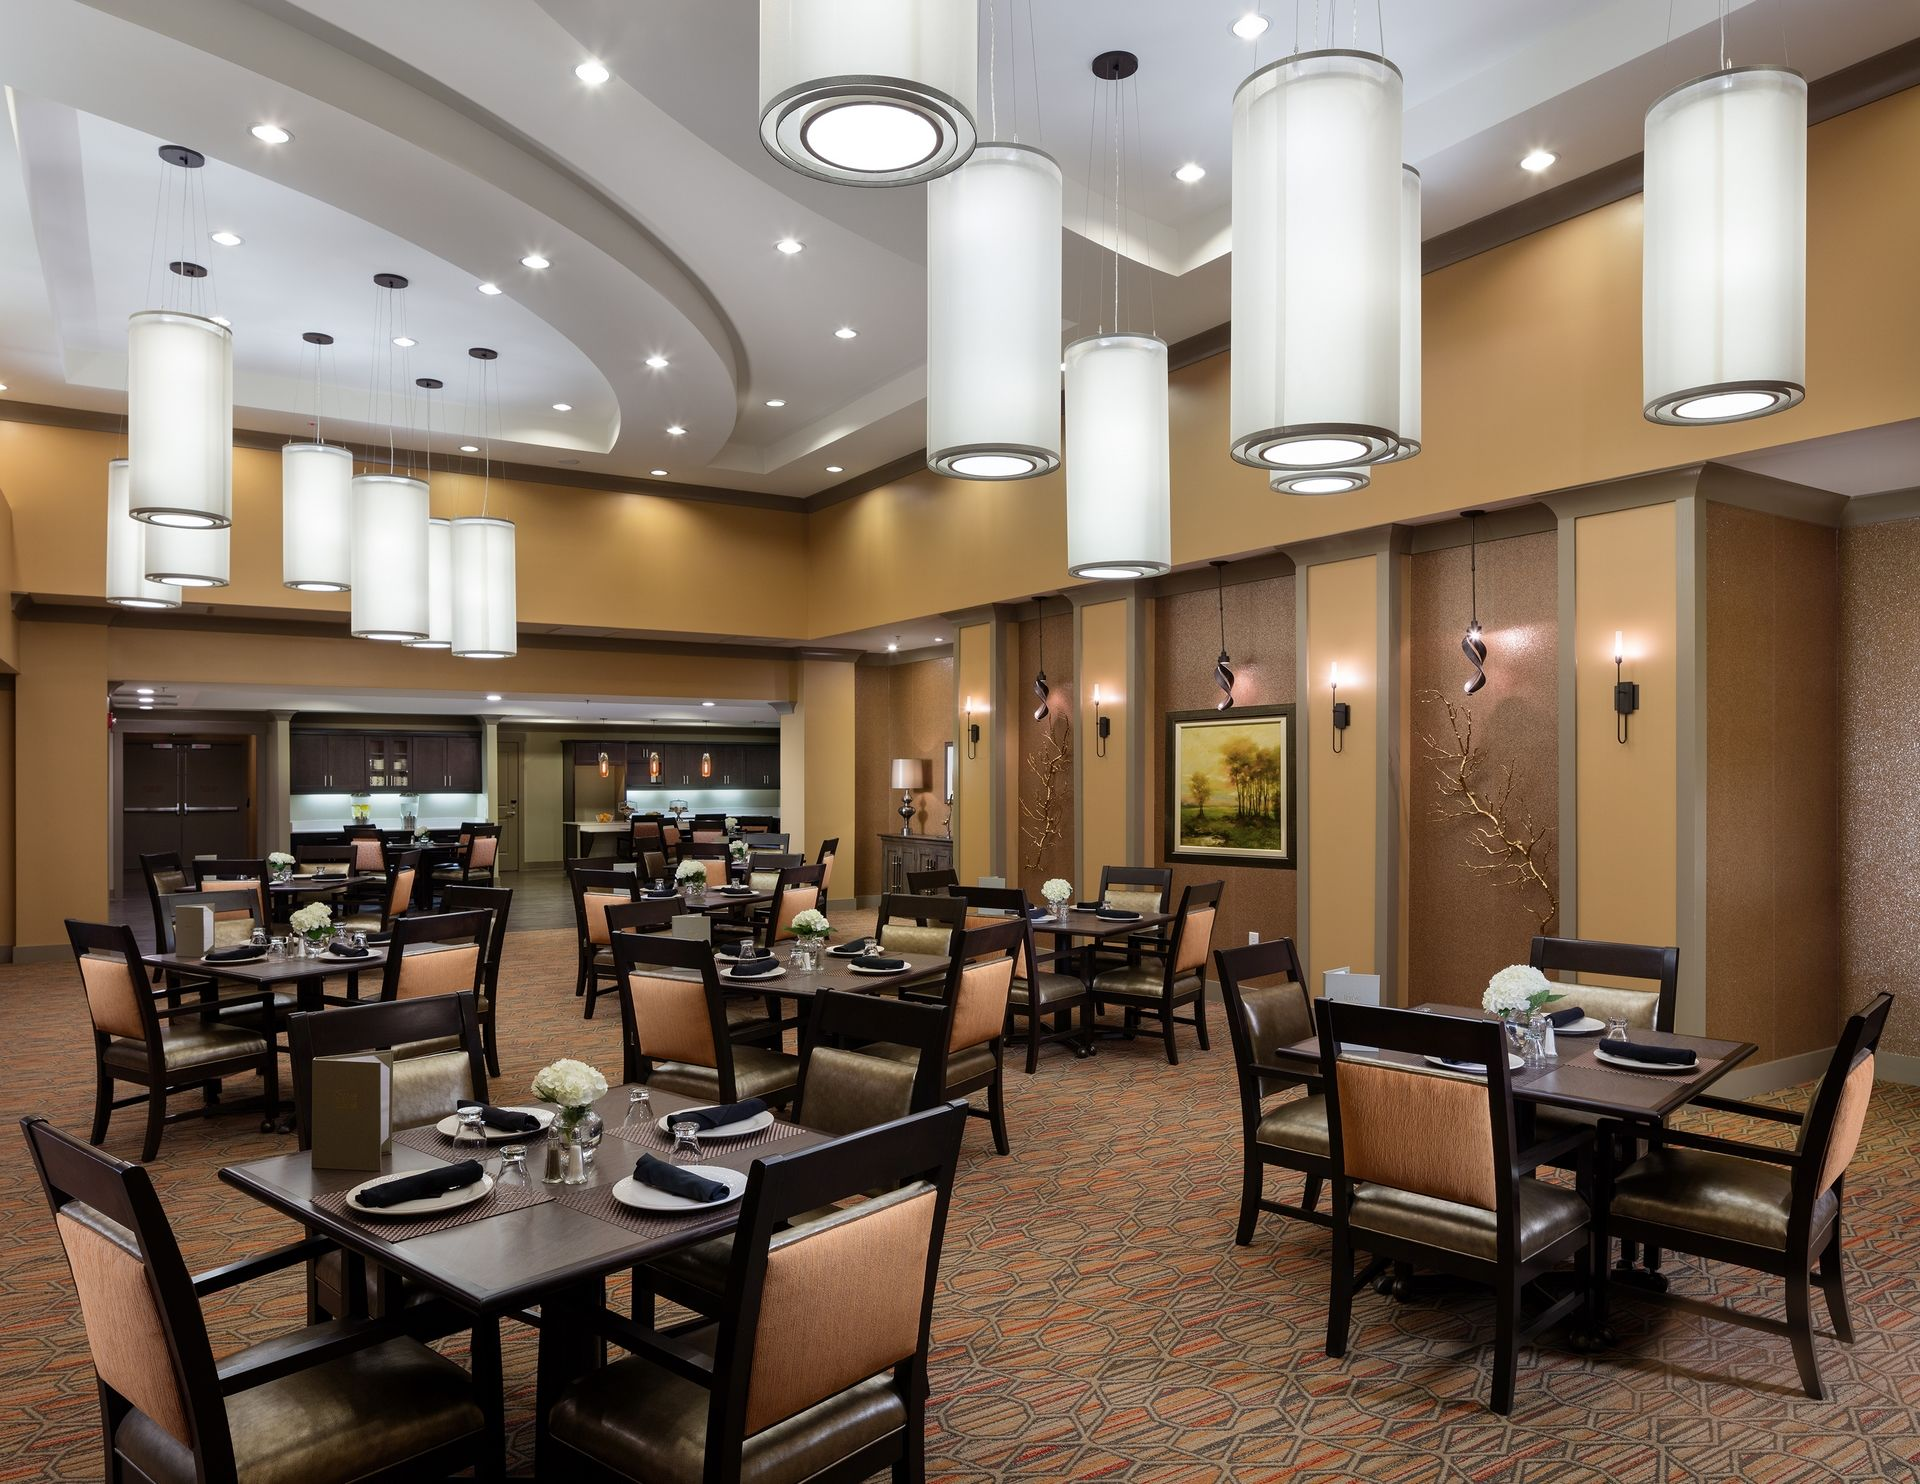 Thrive Athens Memory Care Dining Room Dementia Assisted Living THW senior living architects